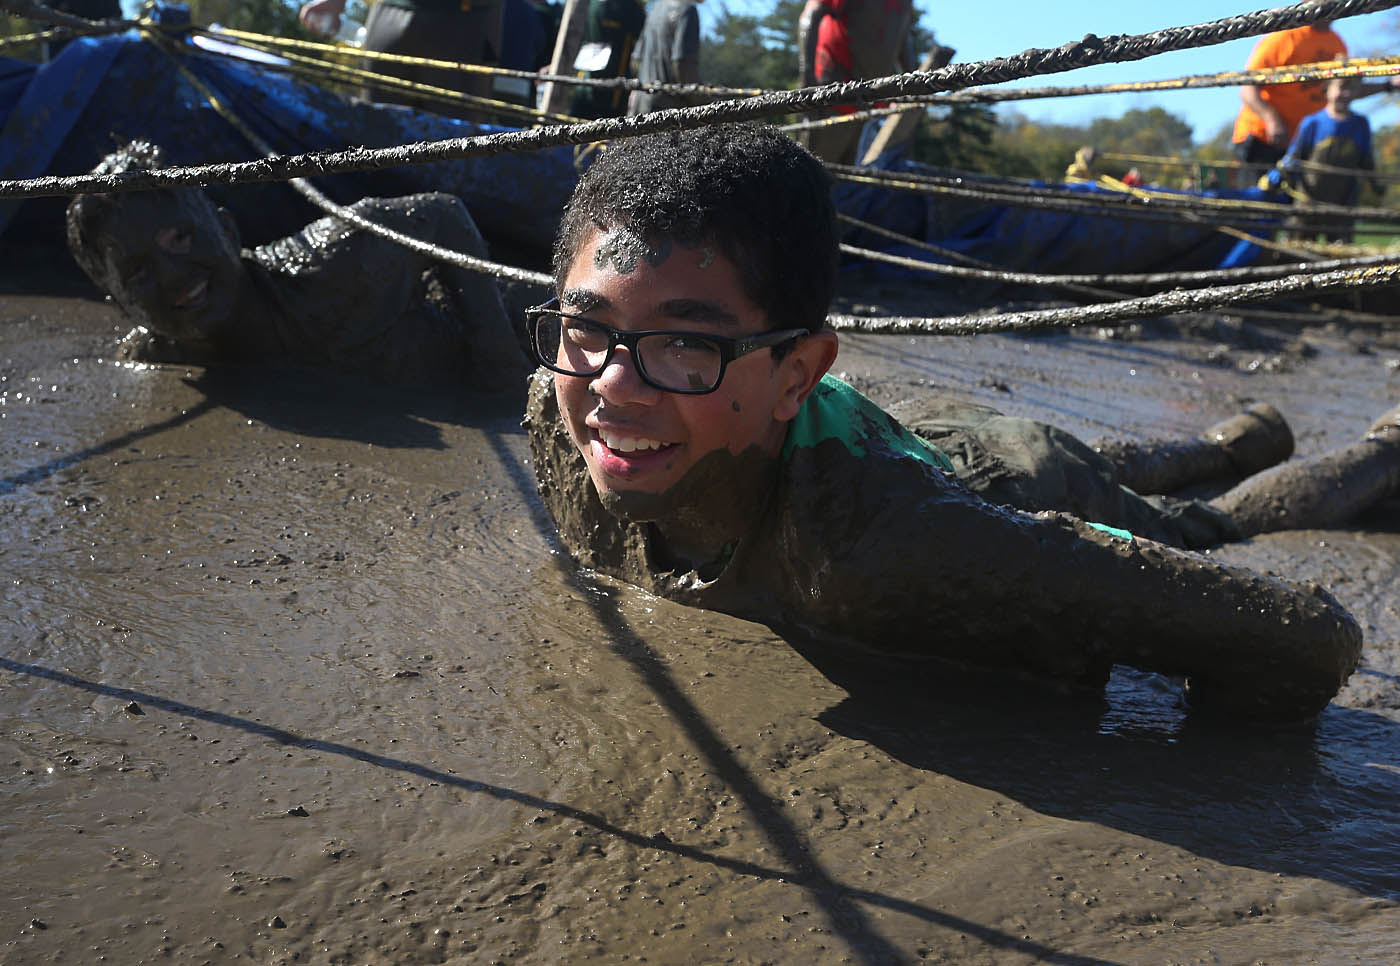 Bernard Carroll,12, of Troop 400 Hamburg crawls through the mud pit as he and other Boy Scouts and others participated in a Scout Strong 5k mud run and obstacle course at a big scout camporee at Beaver Island State Park, in Grand Island, N.Y. on Saturday Oct. 15, 2016. (John Hickey/Buffalo News)